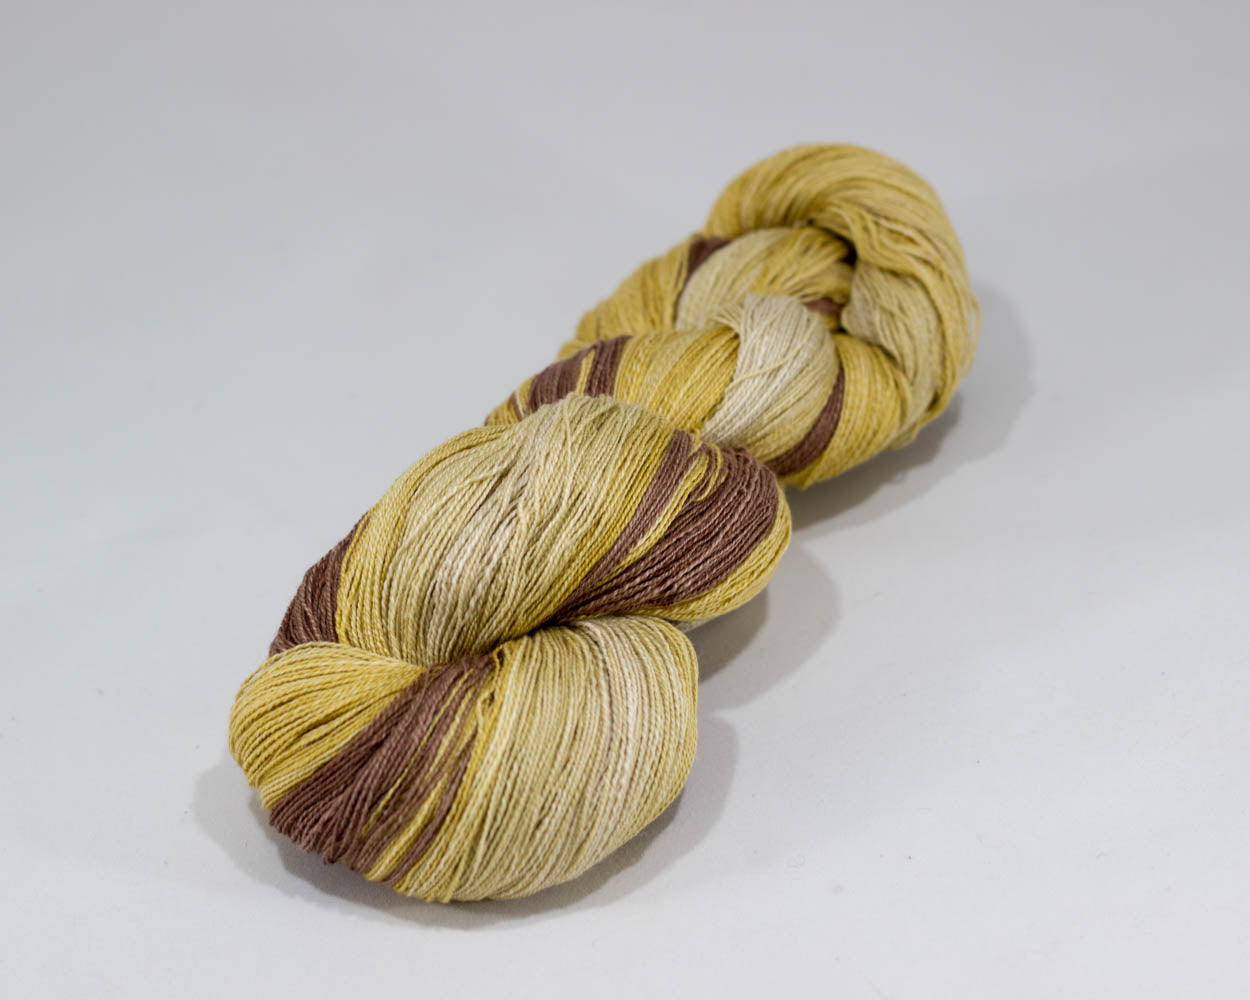 Cotton Sliver, Metalworks - Buchanan Fiber Co.